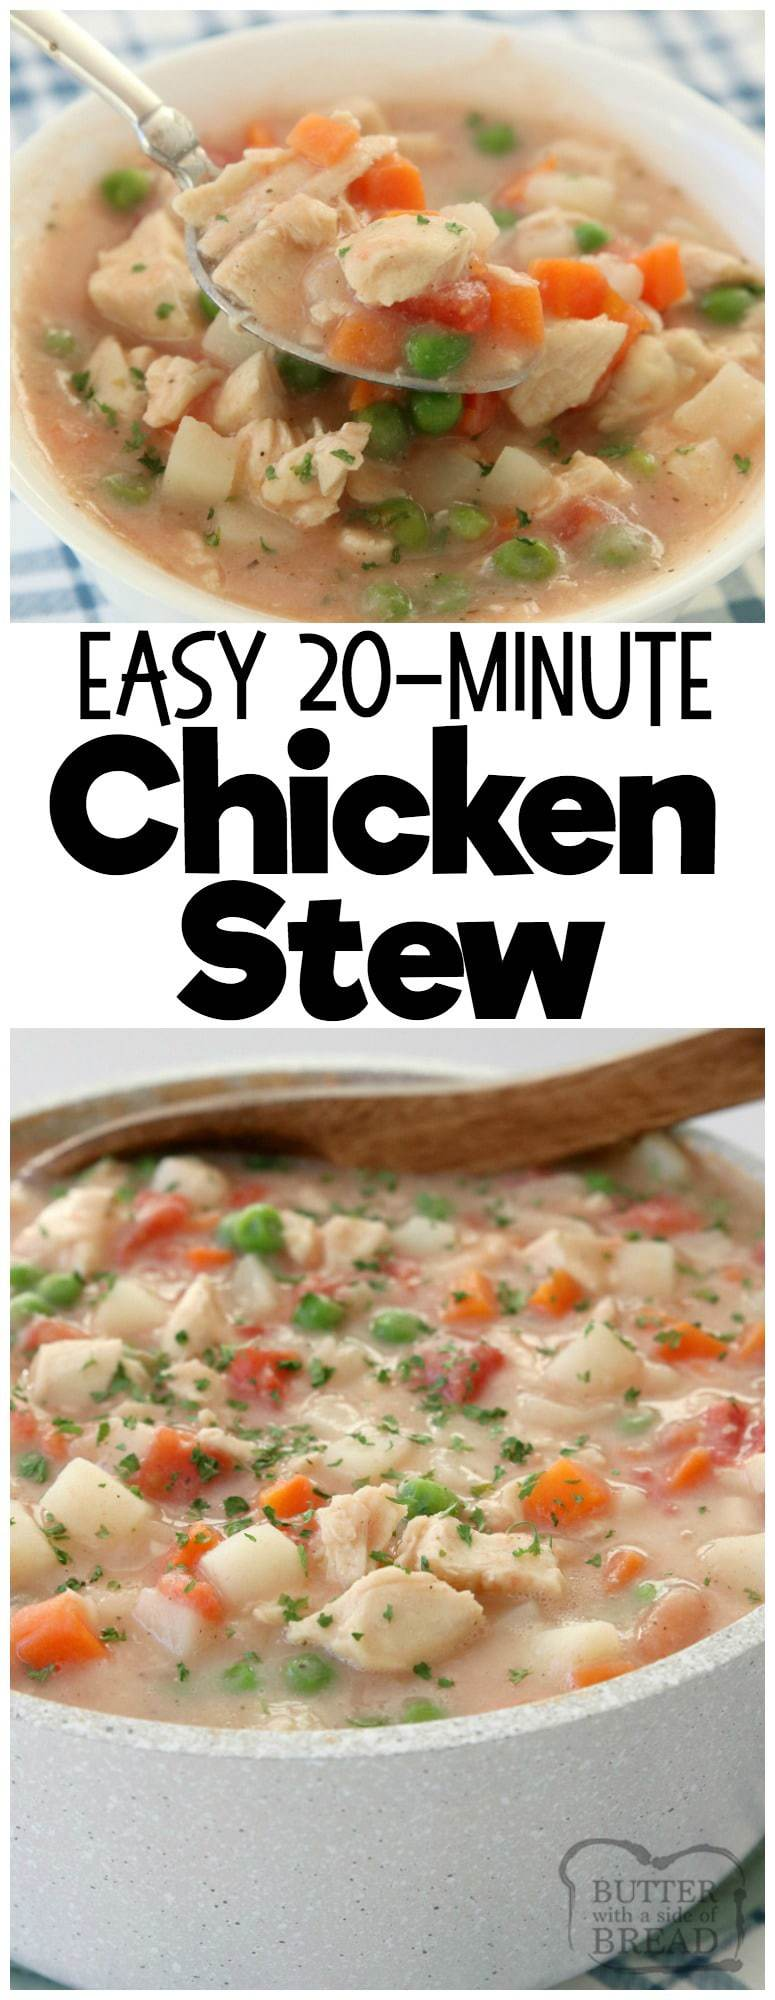 20-Minute Chicken Stew recipe, perfect for busy nights! Hearty stew with tender chicken & vegetables that comes together fast and tastes wonderful.